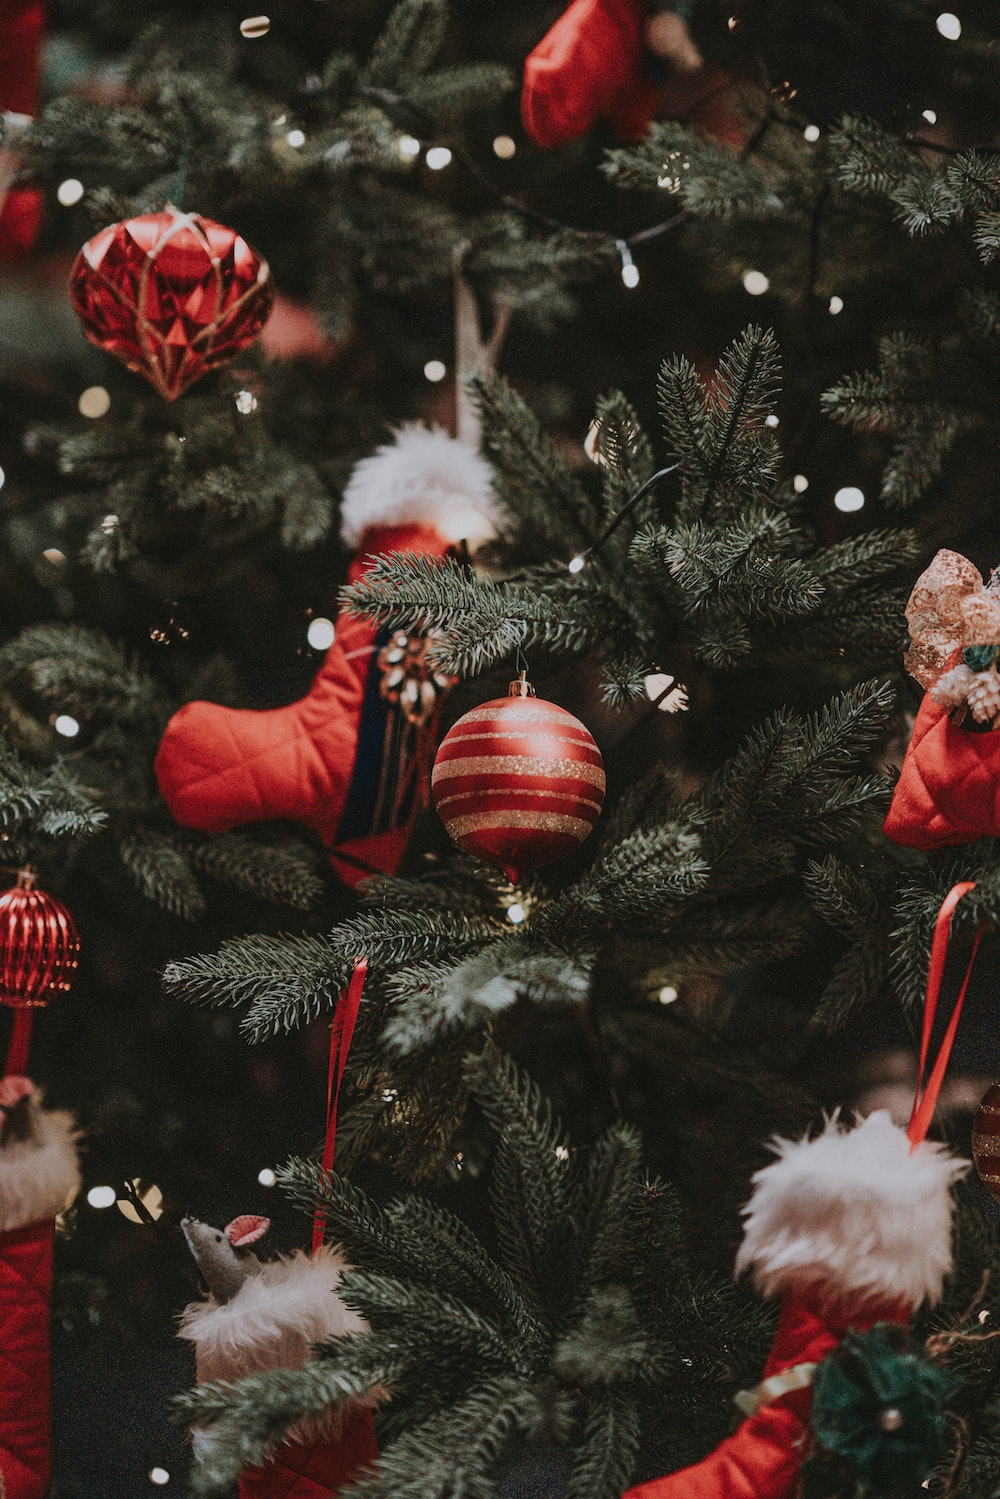 Red ornaments hanging on a Christmas tree. Photo courtesy of Annie Spratt on Unsplash.